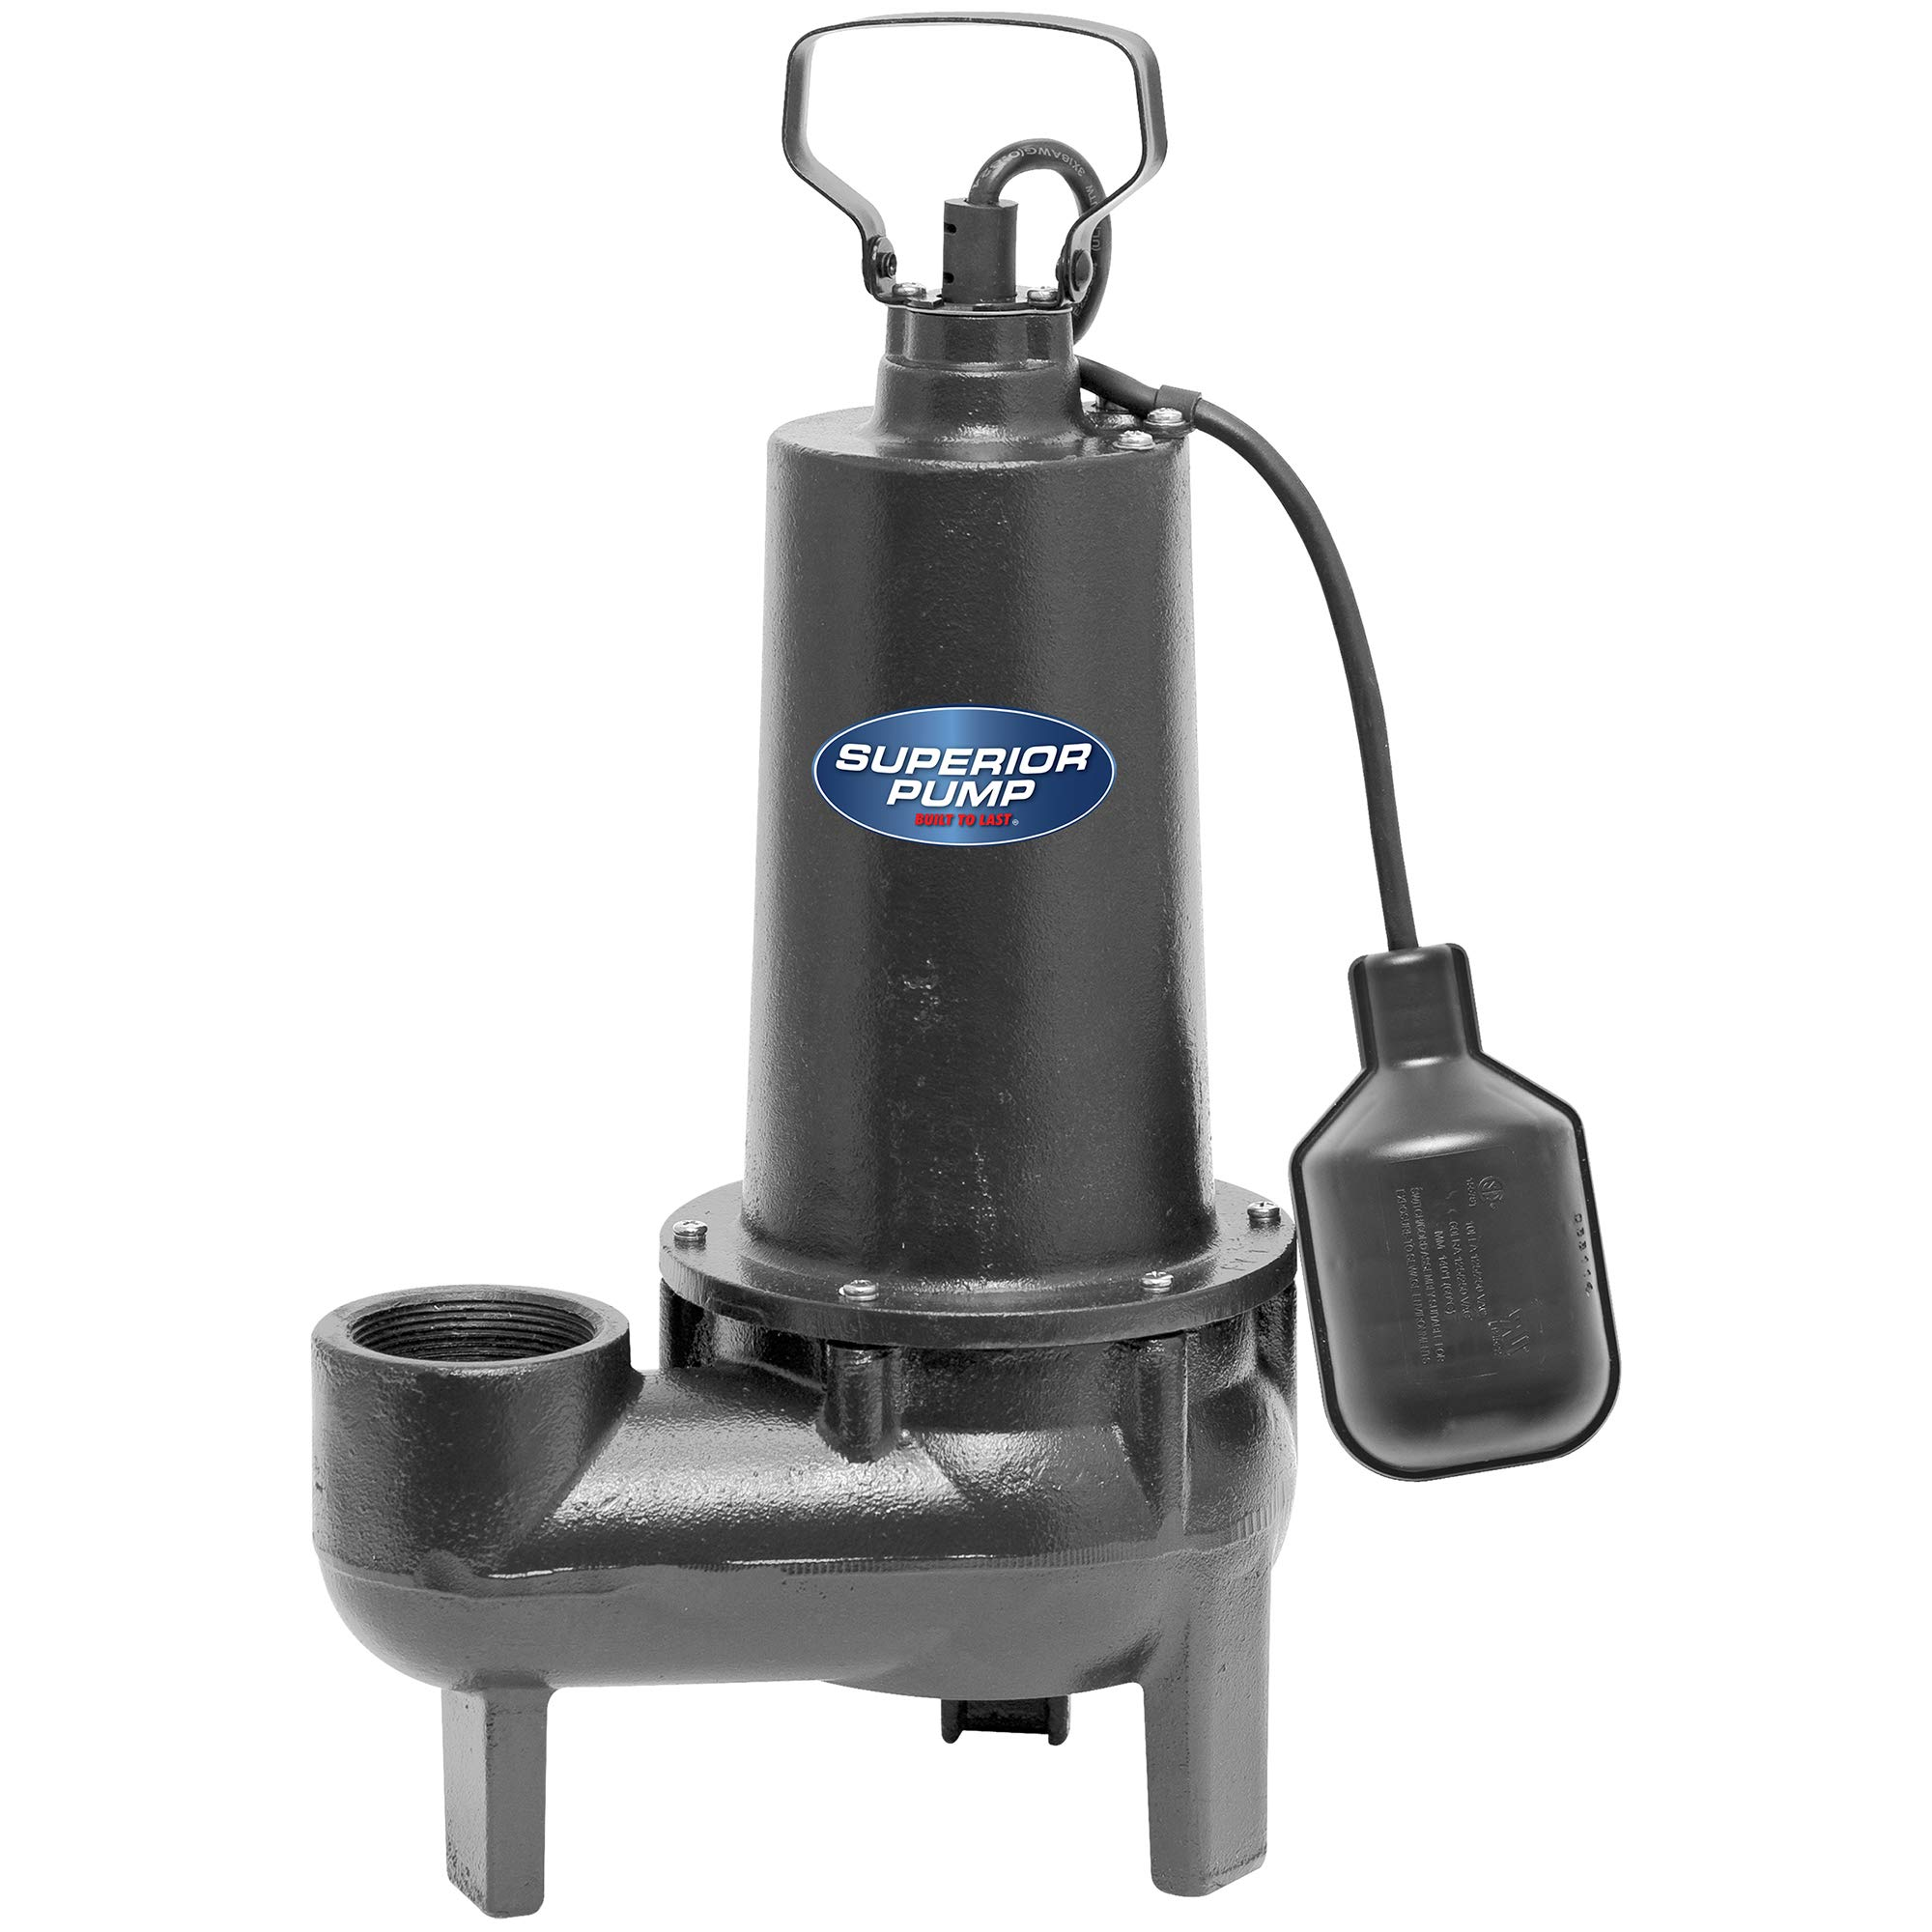 Superior Pump 93501 1/2 HP Cast Iron Sewage Pump with Tethered Float Switch by Superior Pump